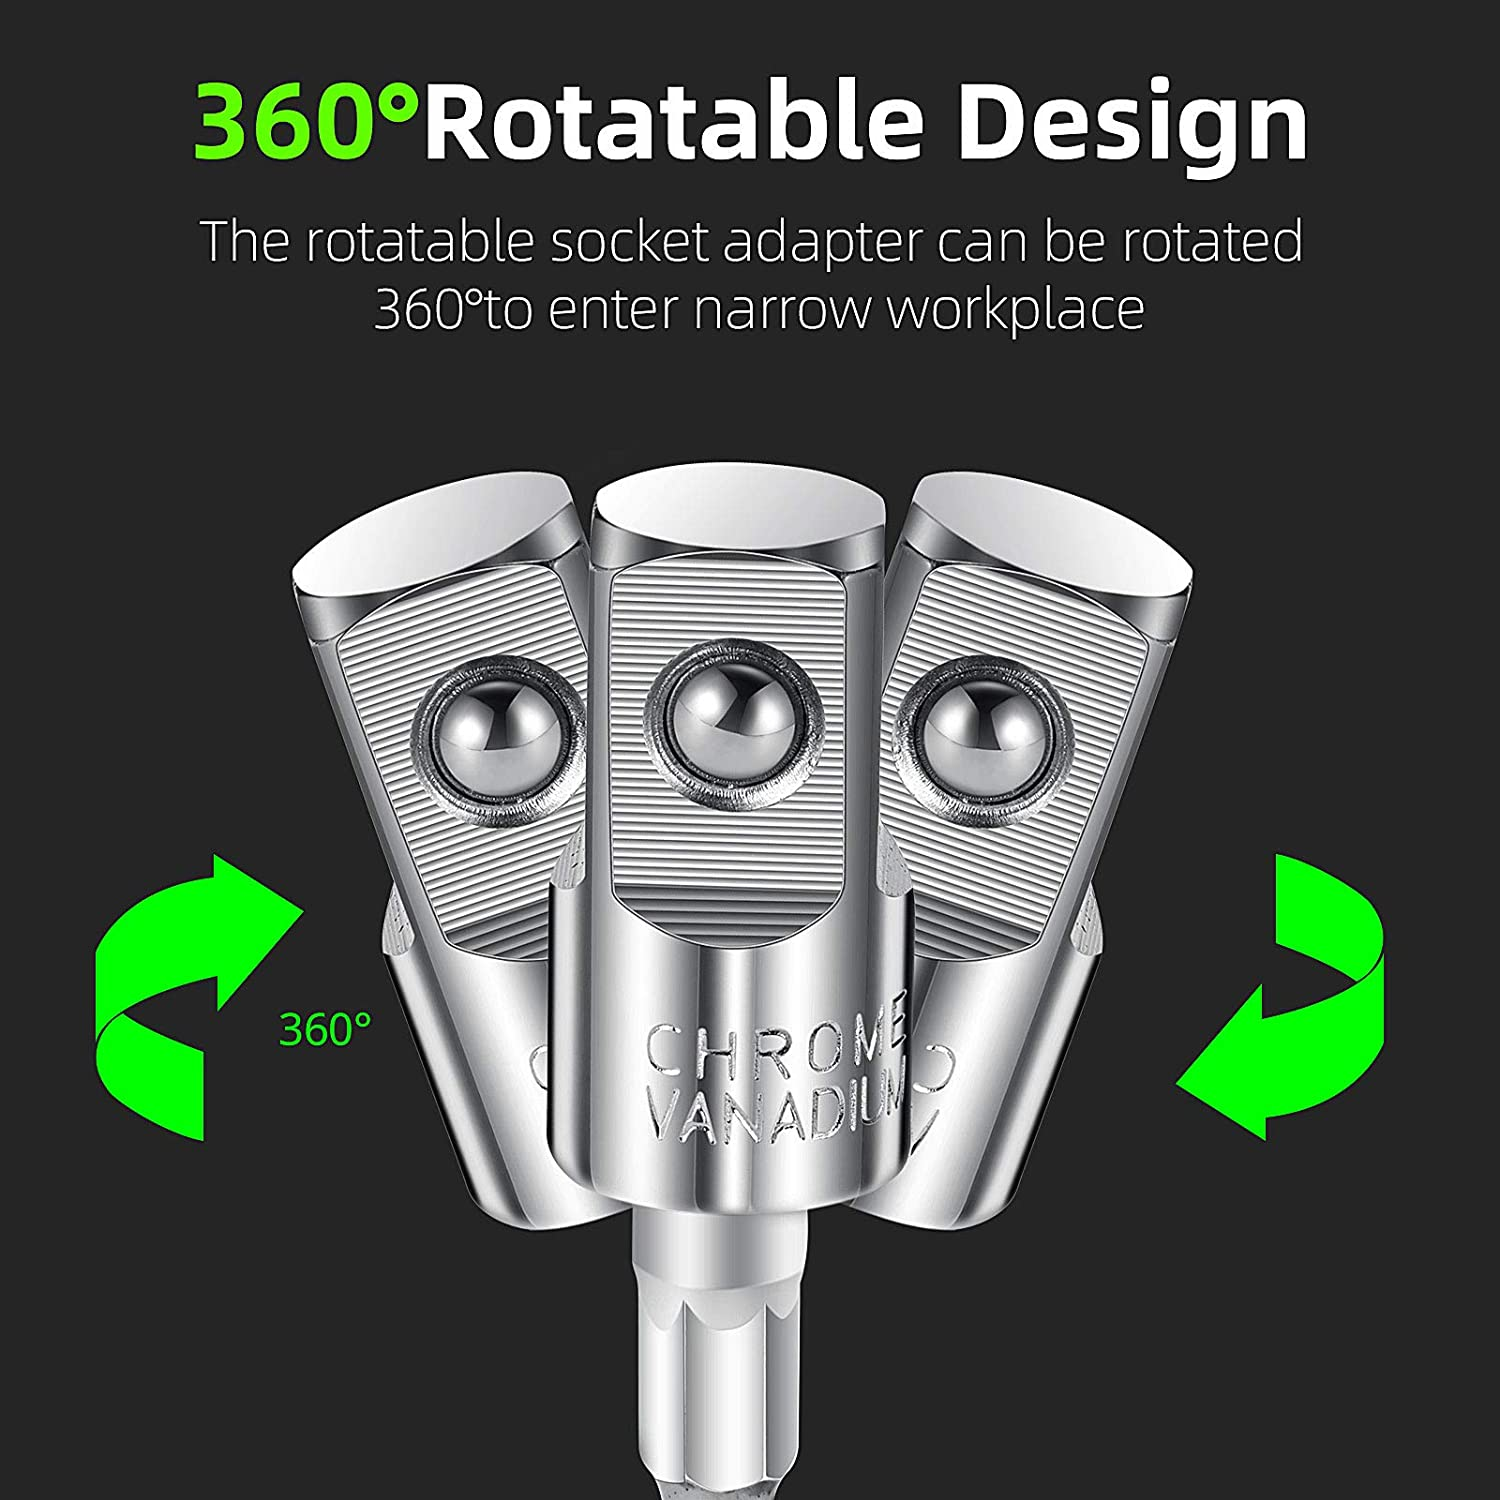 6 Pieces Power Drill Sockets Adapter Set Impact Driver Adapter 360 Degree Rotatable Hex Shank Impact Driver Socket Adapter Socket to Drill Adapter 1//4 Inch 3//8 Inch 1//2 Inch